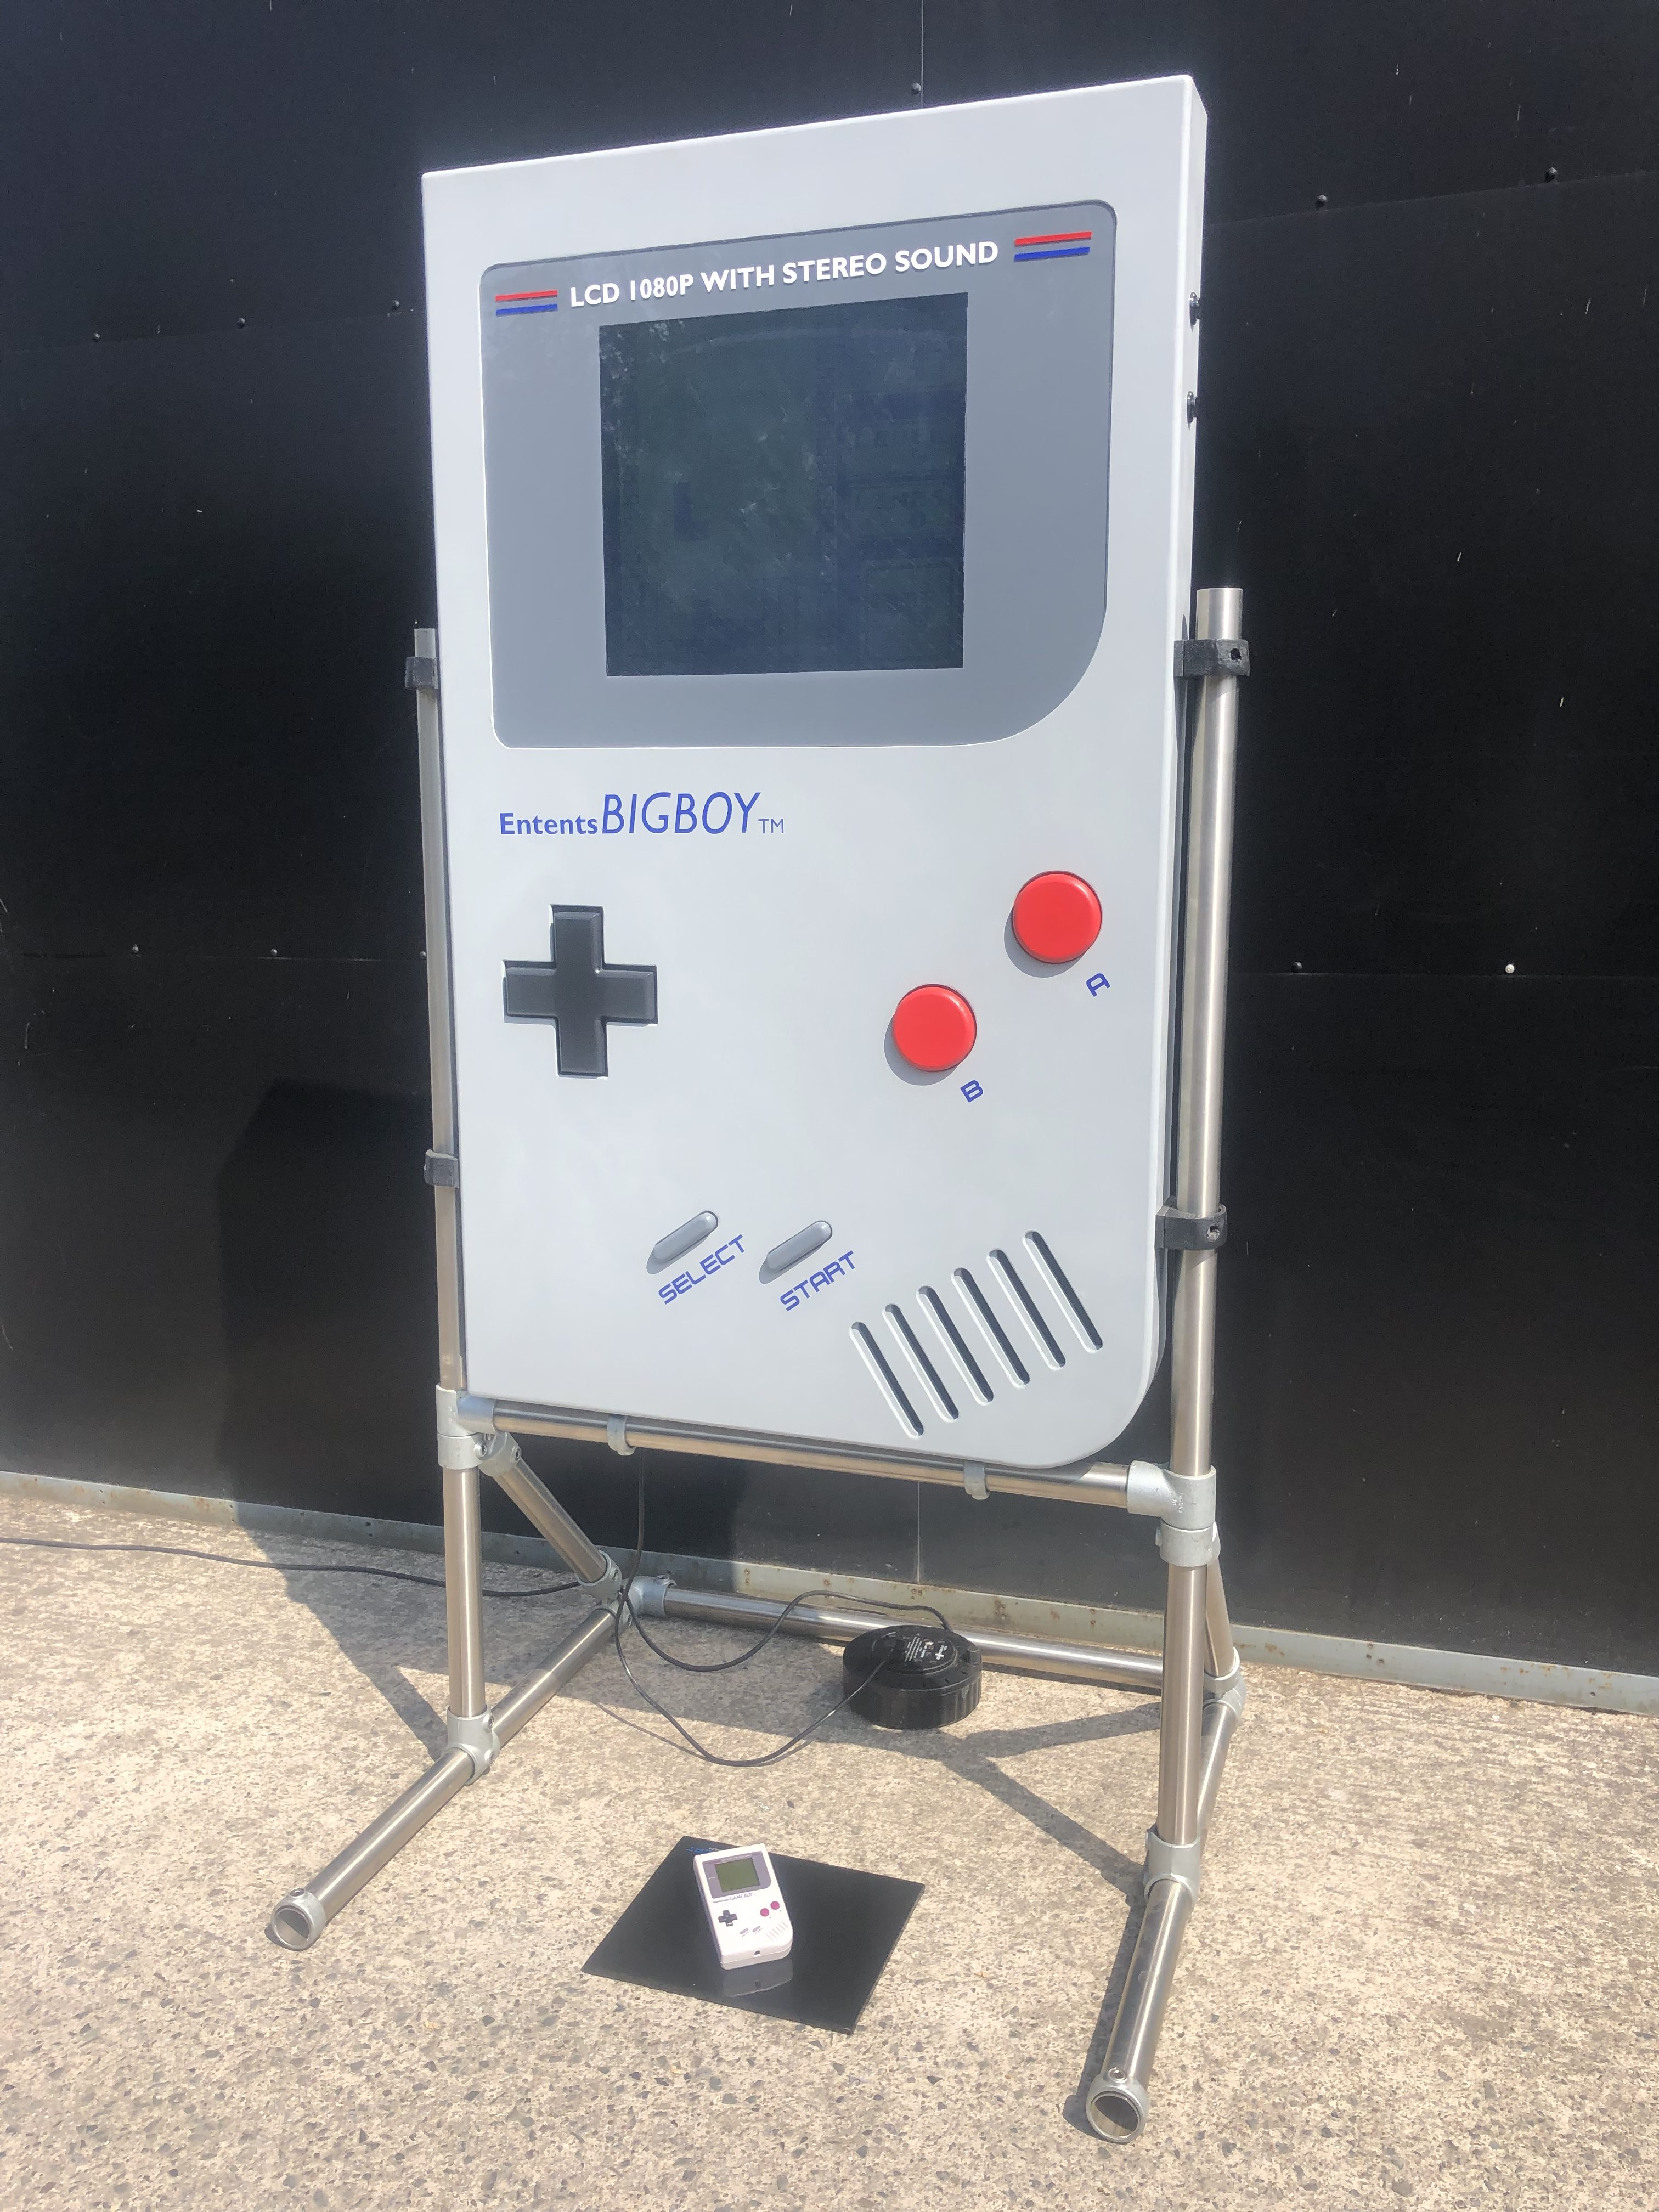 Giant Gameboy Welcome To The Worlds Largest Playable Gameboy